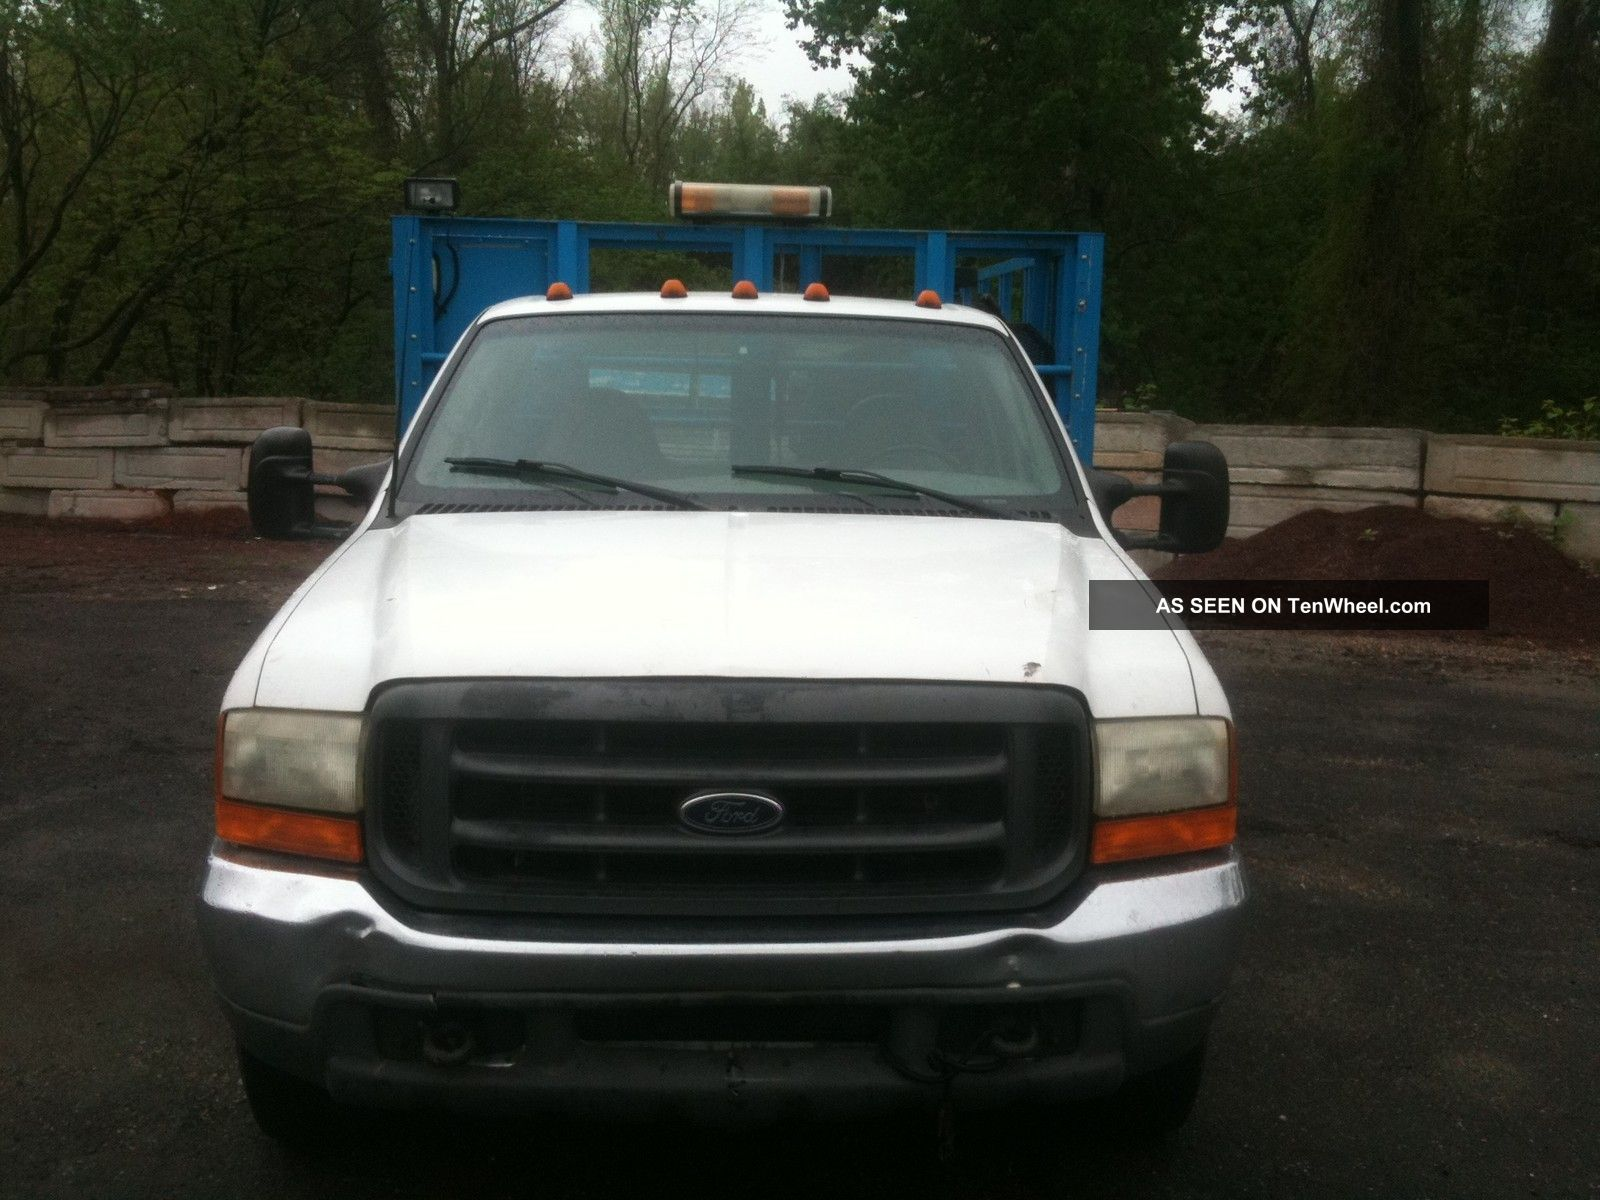 Ford F Tire Truck Diesel V Duty Tire Truck With Compressor Lgw on Dodge Dooley